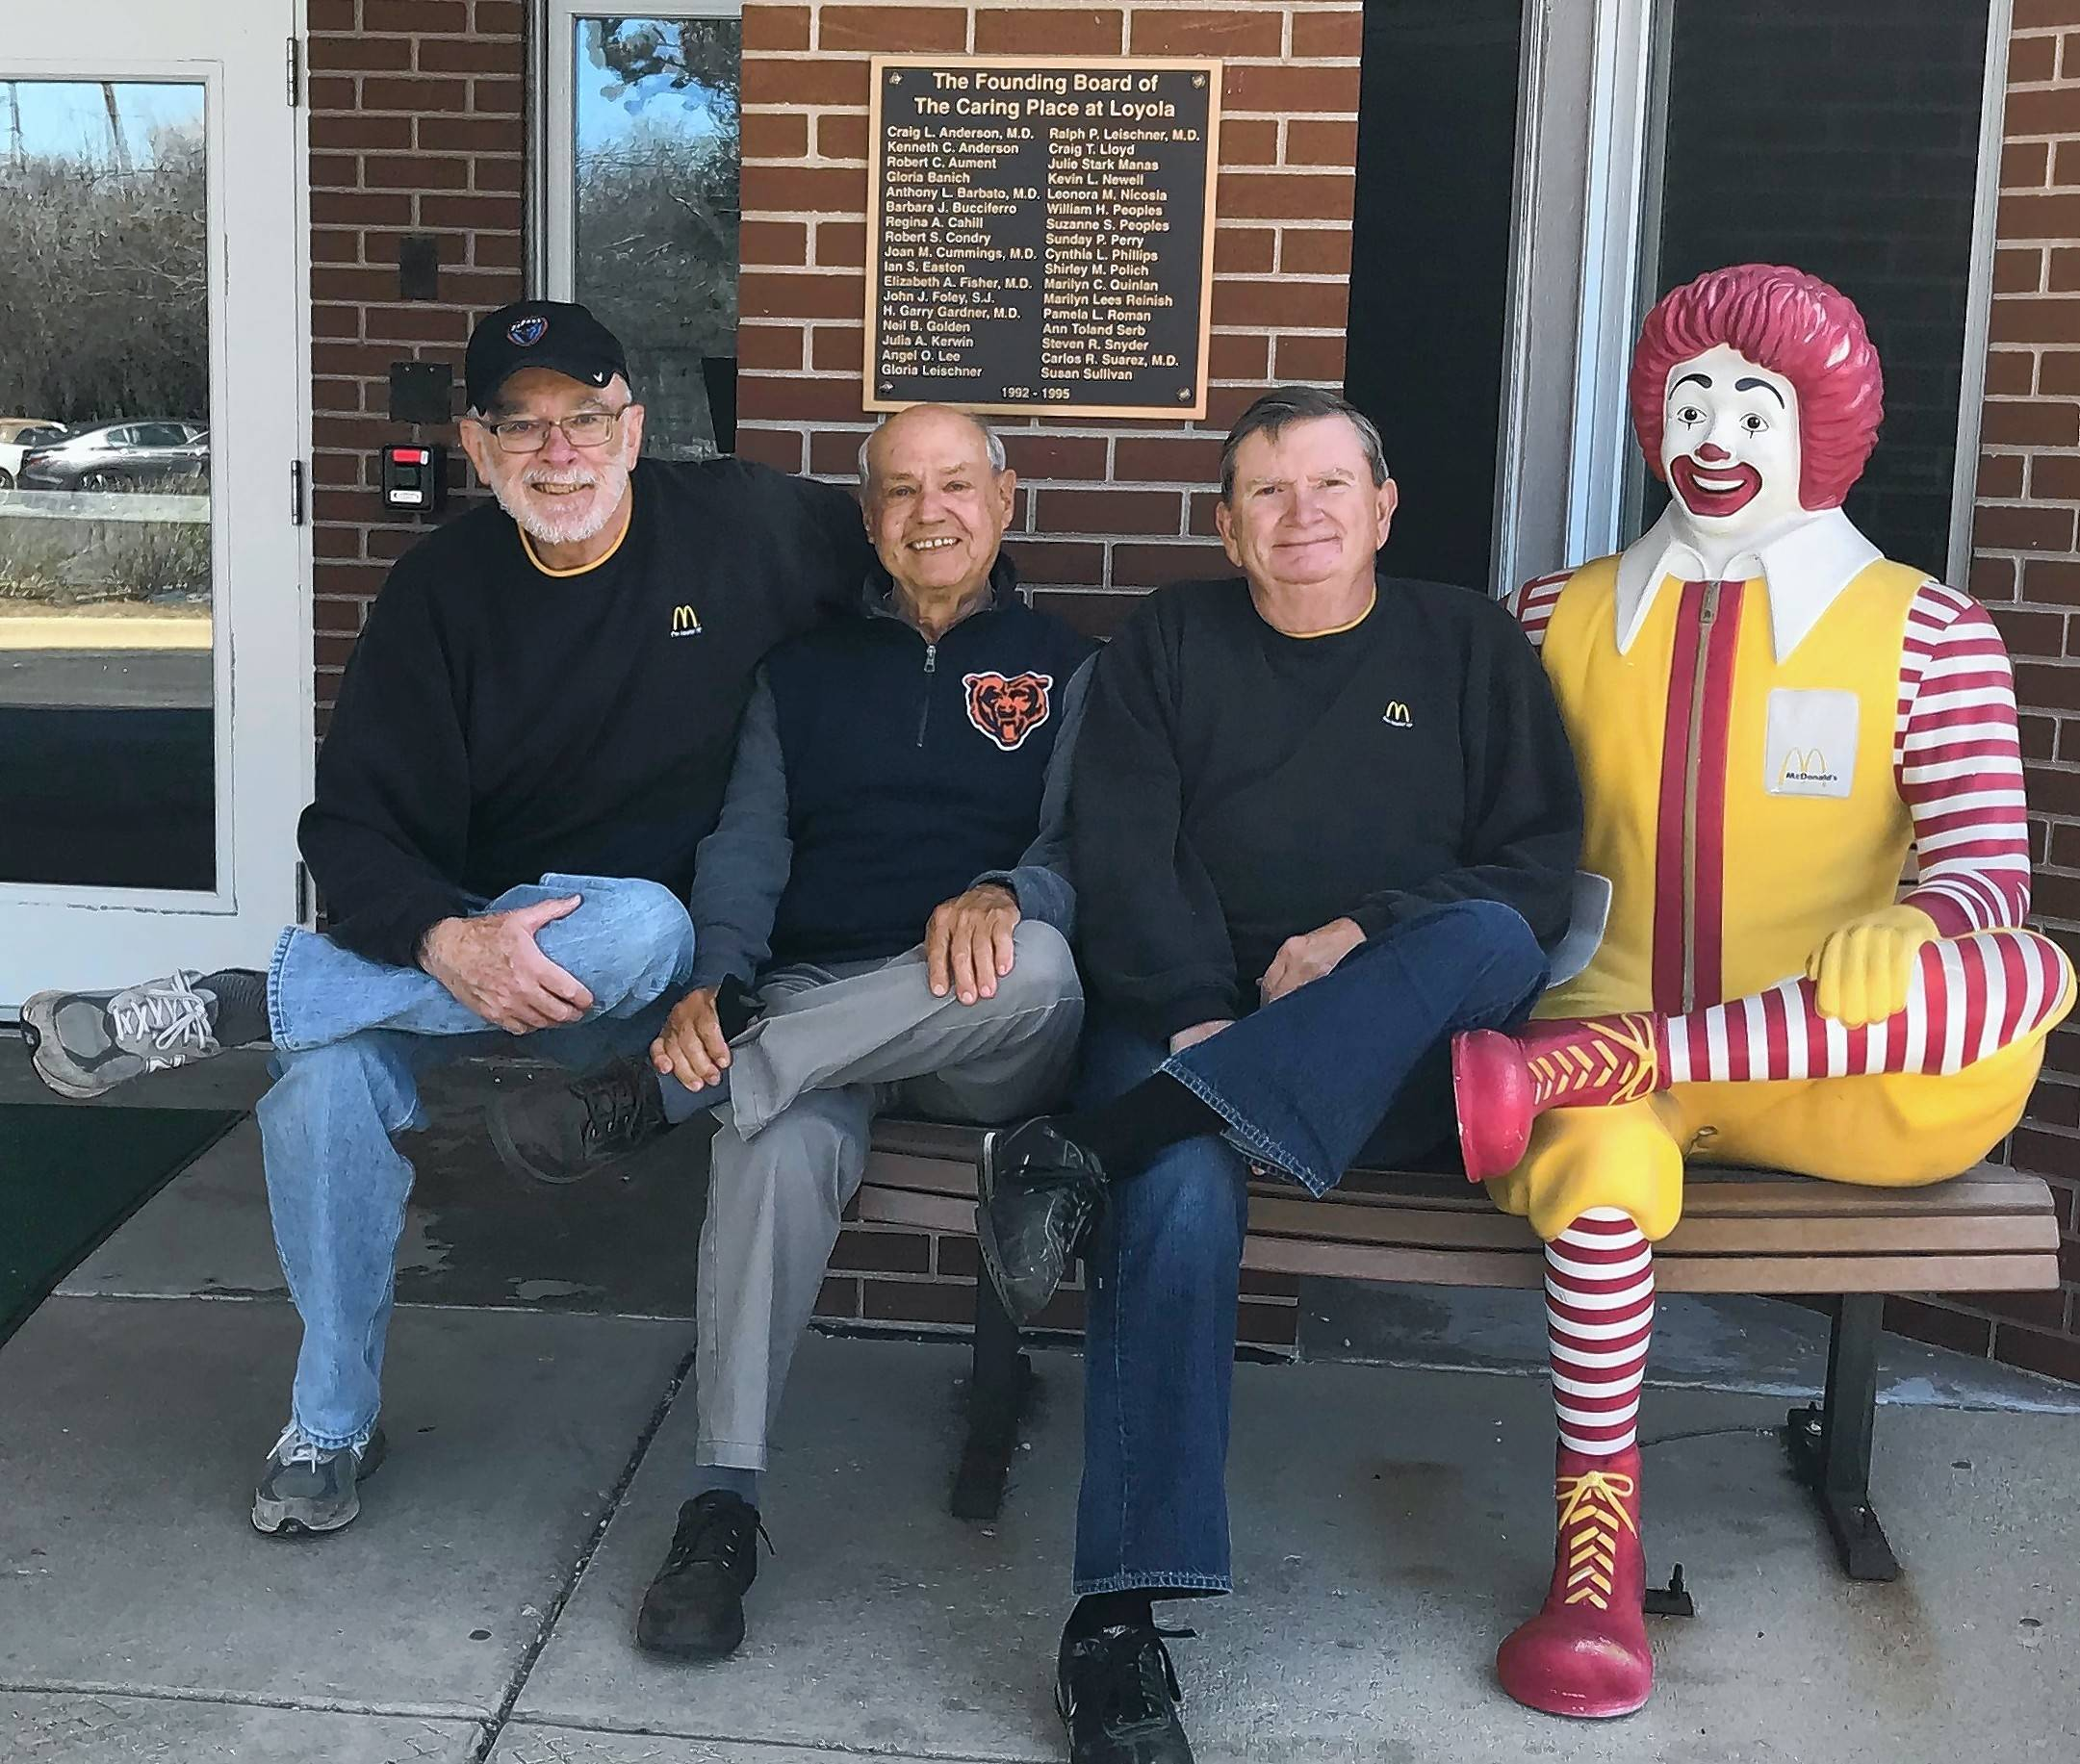 Volunteers Bill Drennan and Jim Korreck of Schaumburg and Mike Dewbray of Darien pose with Ronald McDonald. They volunteer together at the Ronald McDonald House near Loyola University Medical Center.